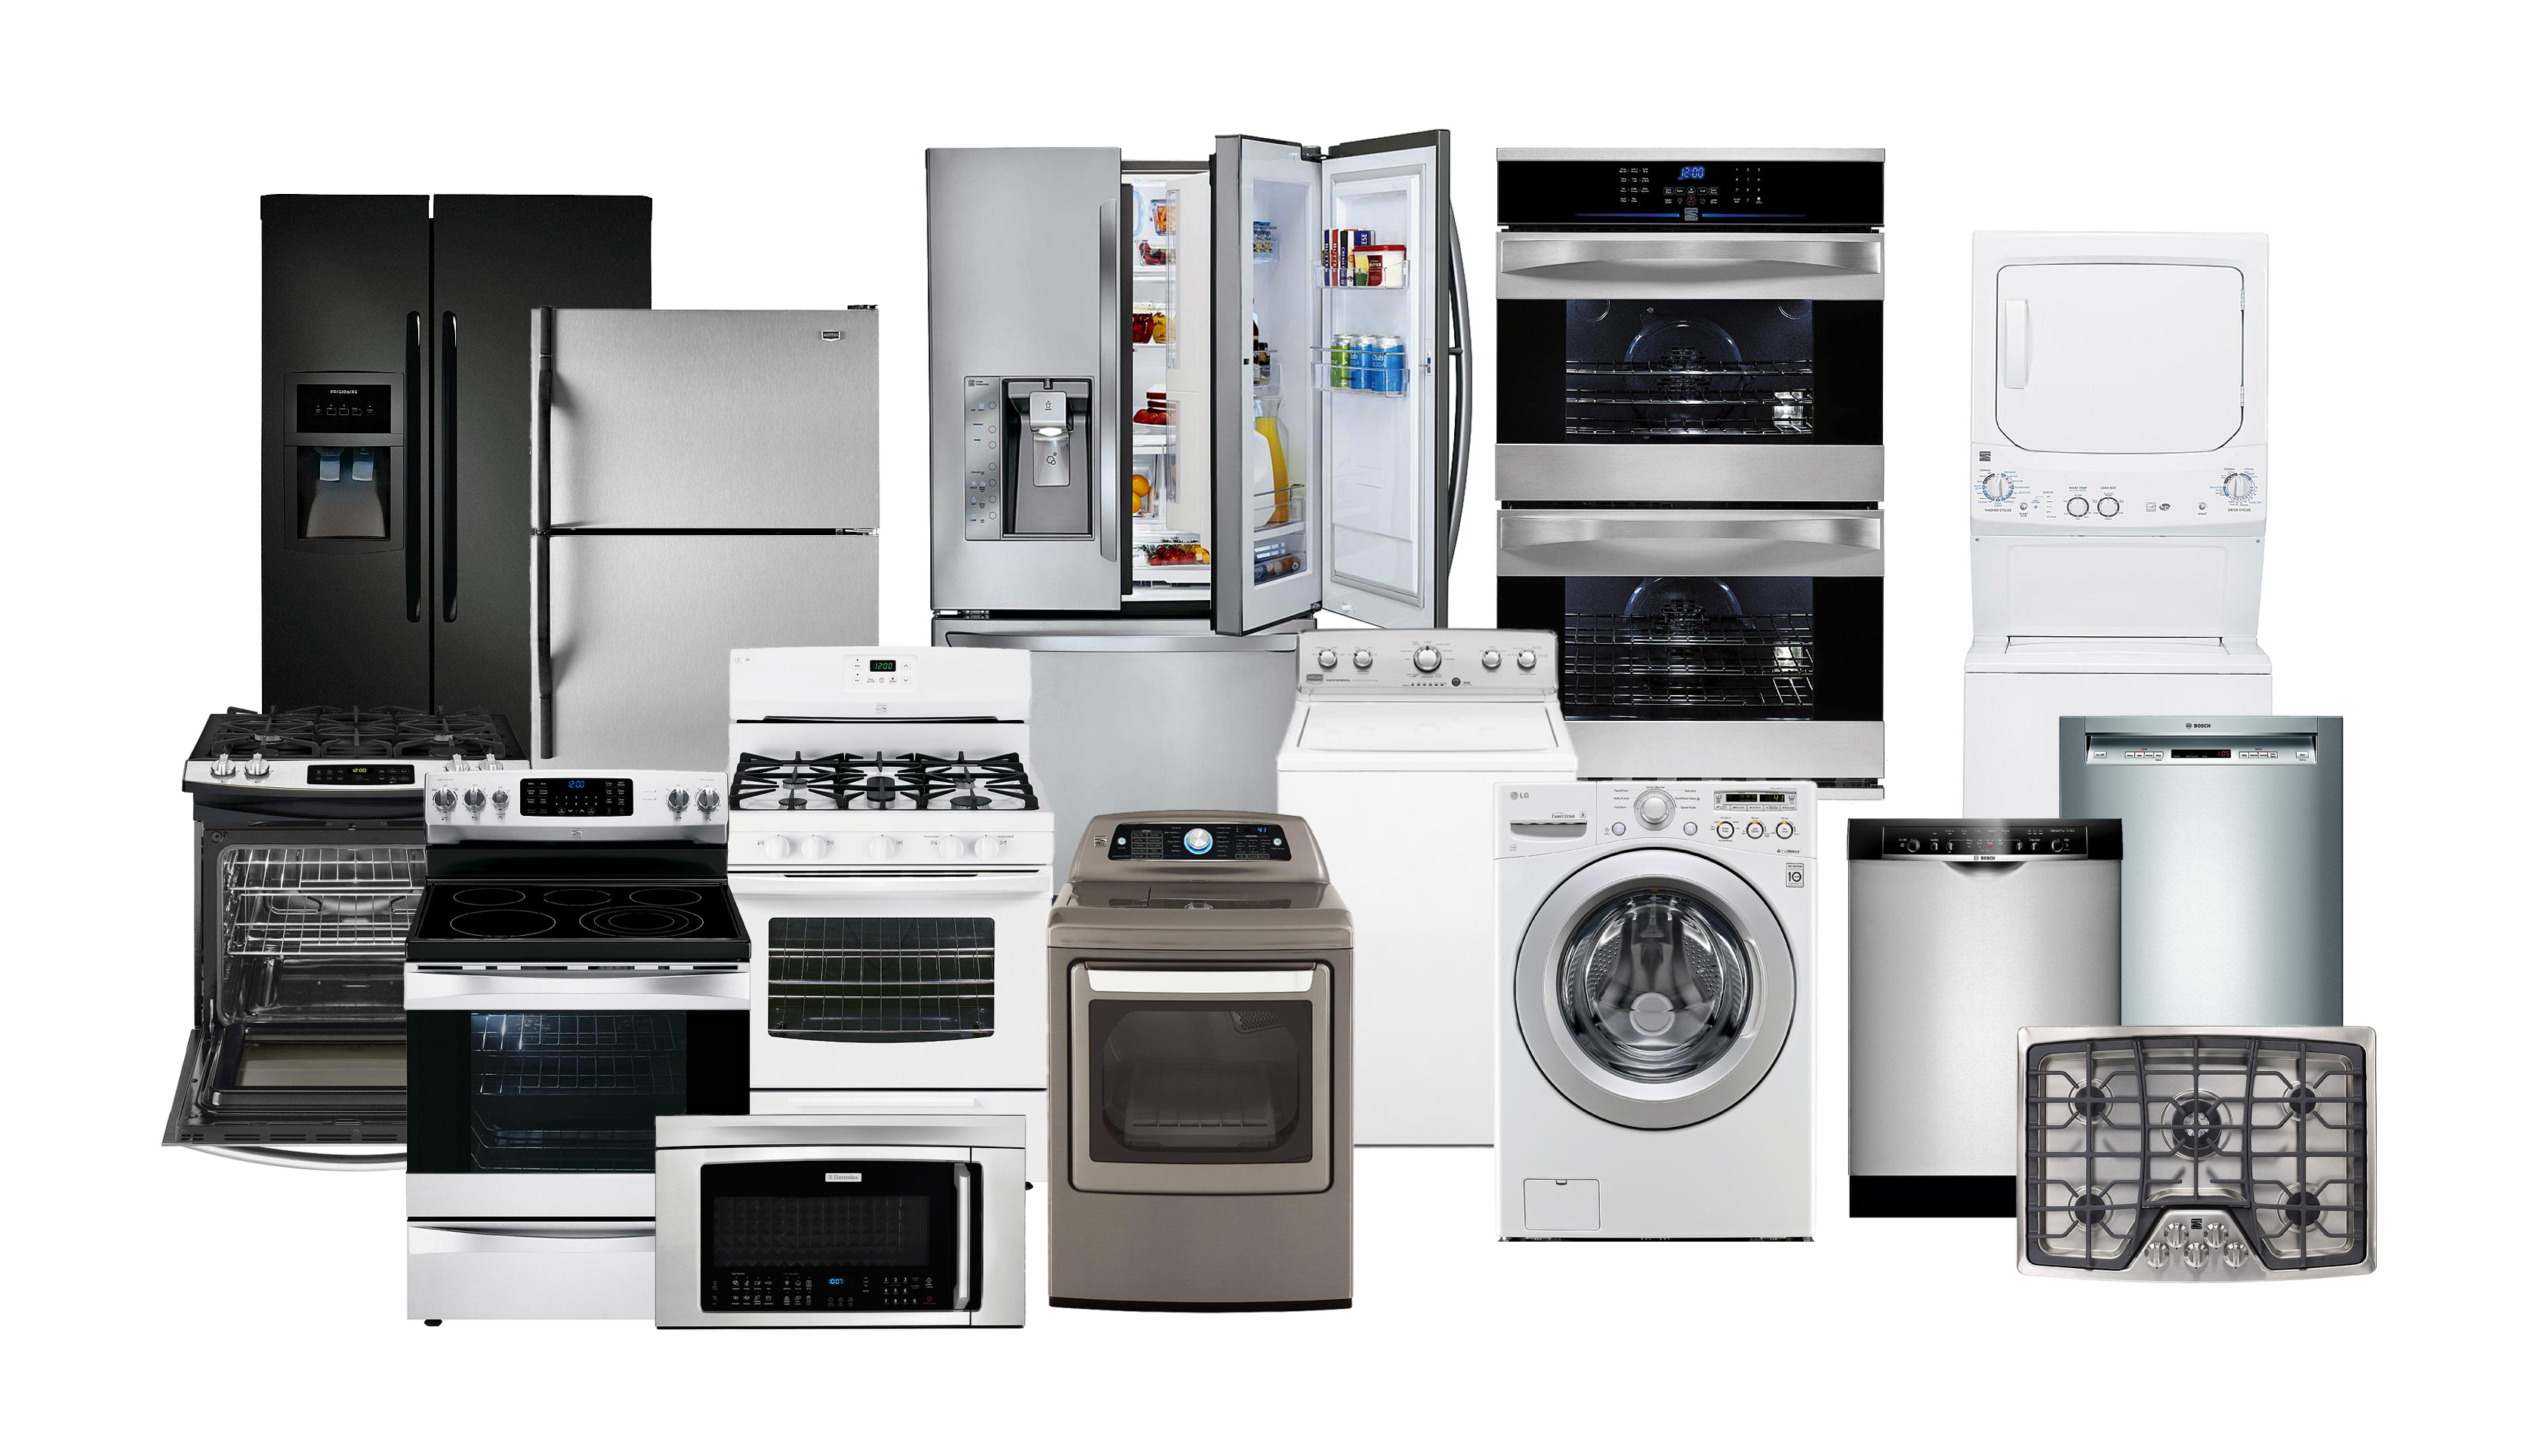 Refrigerator Parts - All Appliance Parts of Sarasota and Bradenton, FL